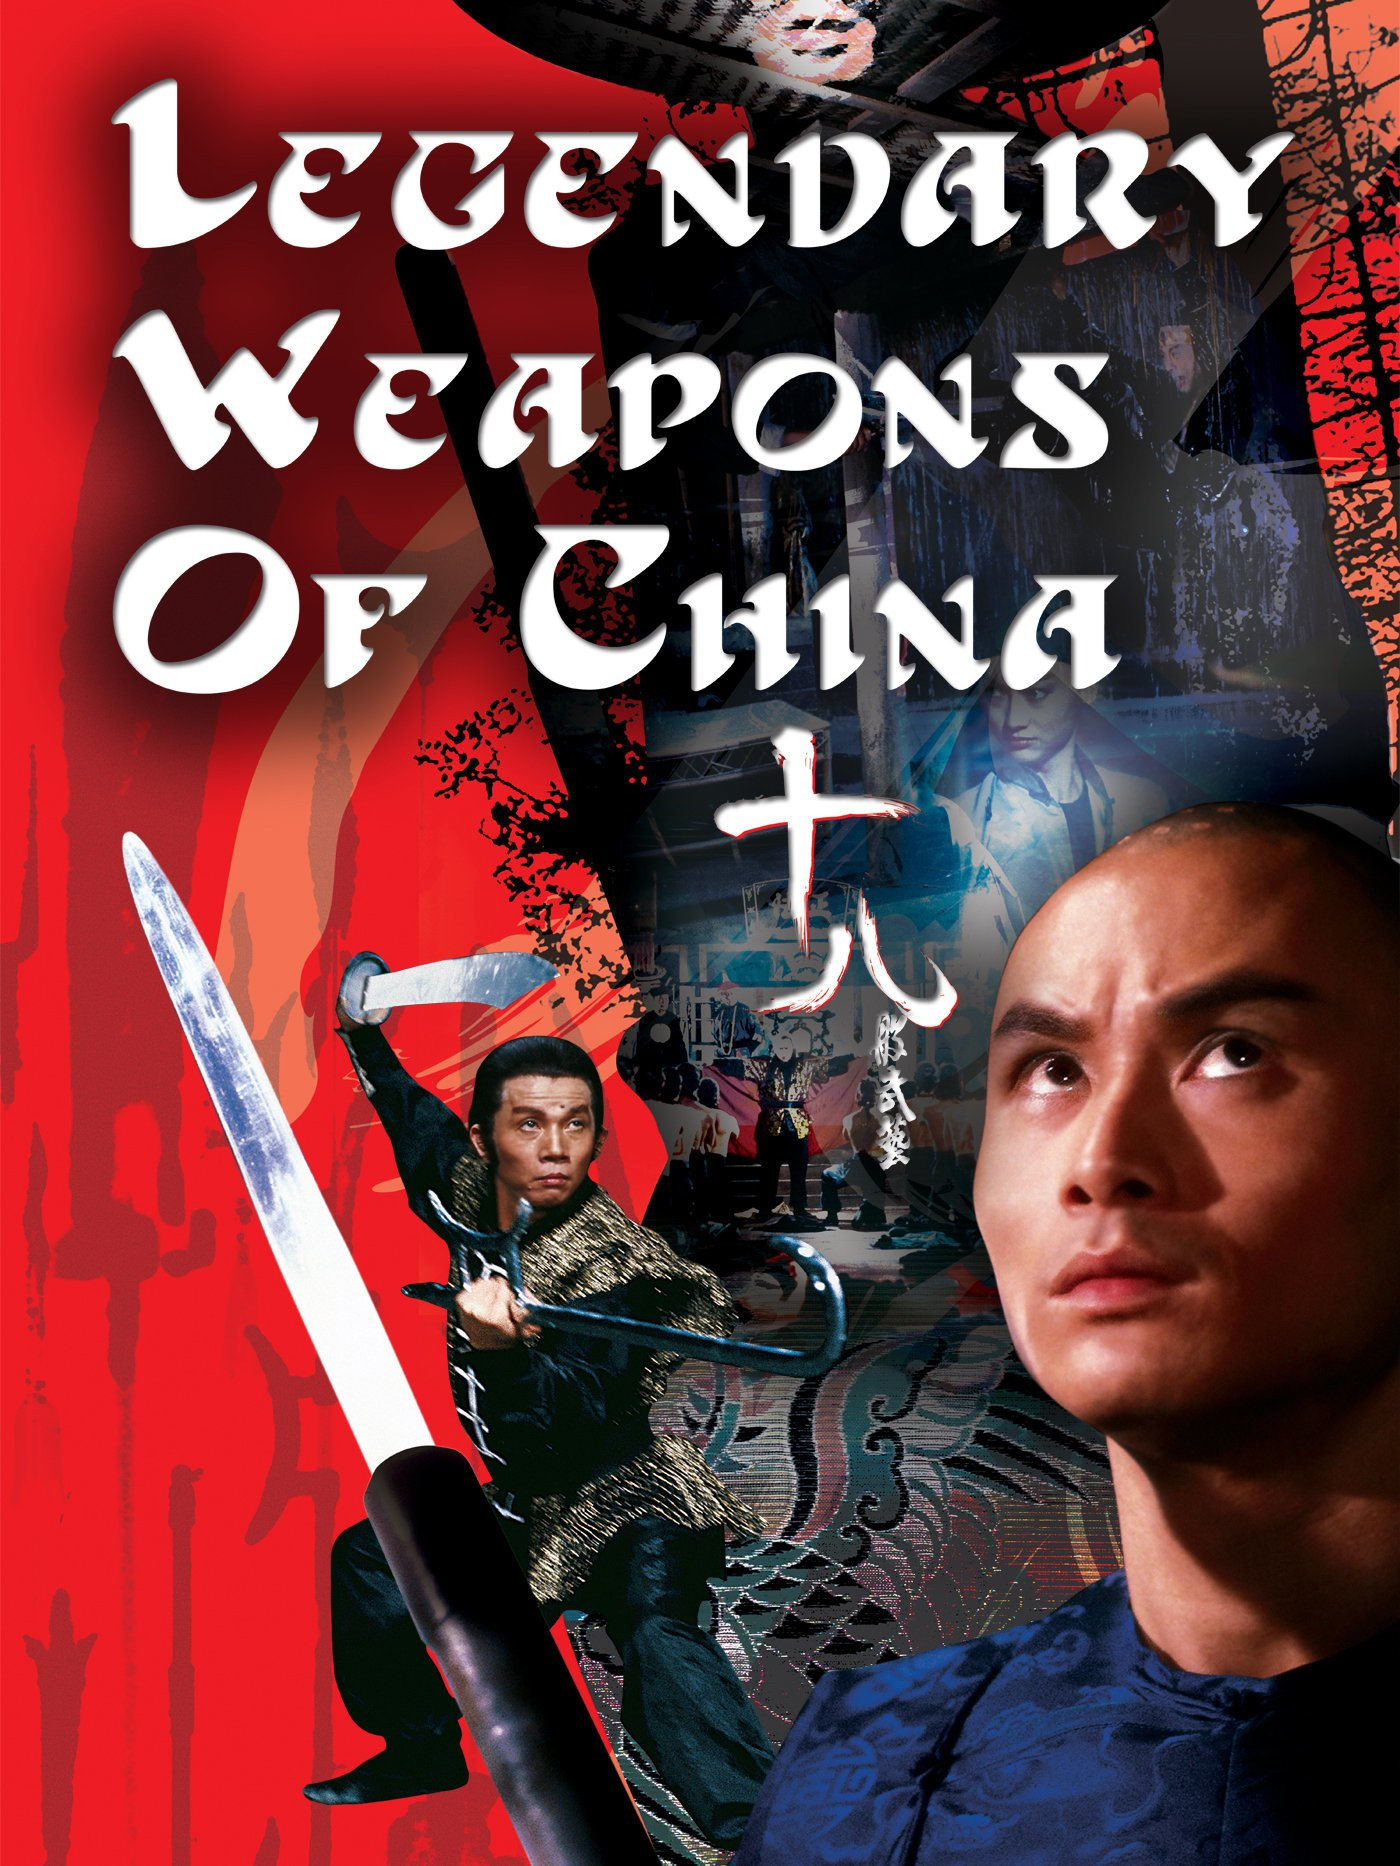 Amazon com: Watch Legendary Weapons Of China | Prime Video